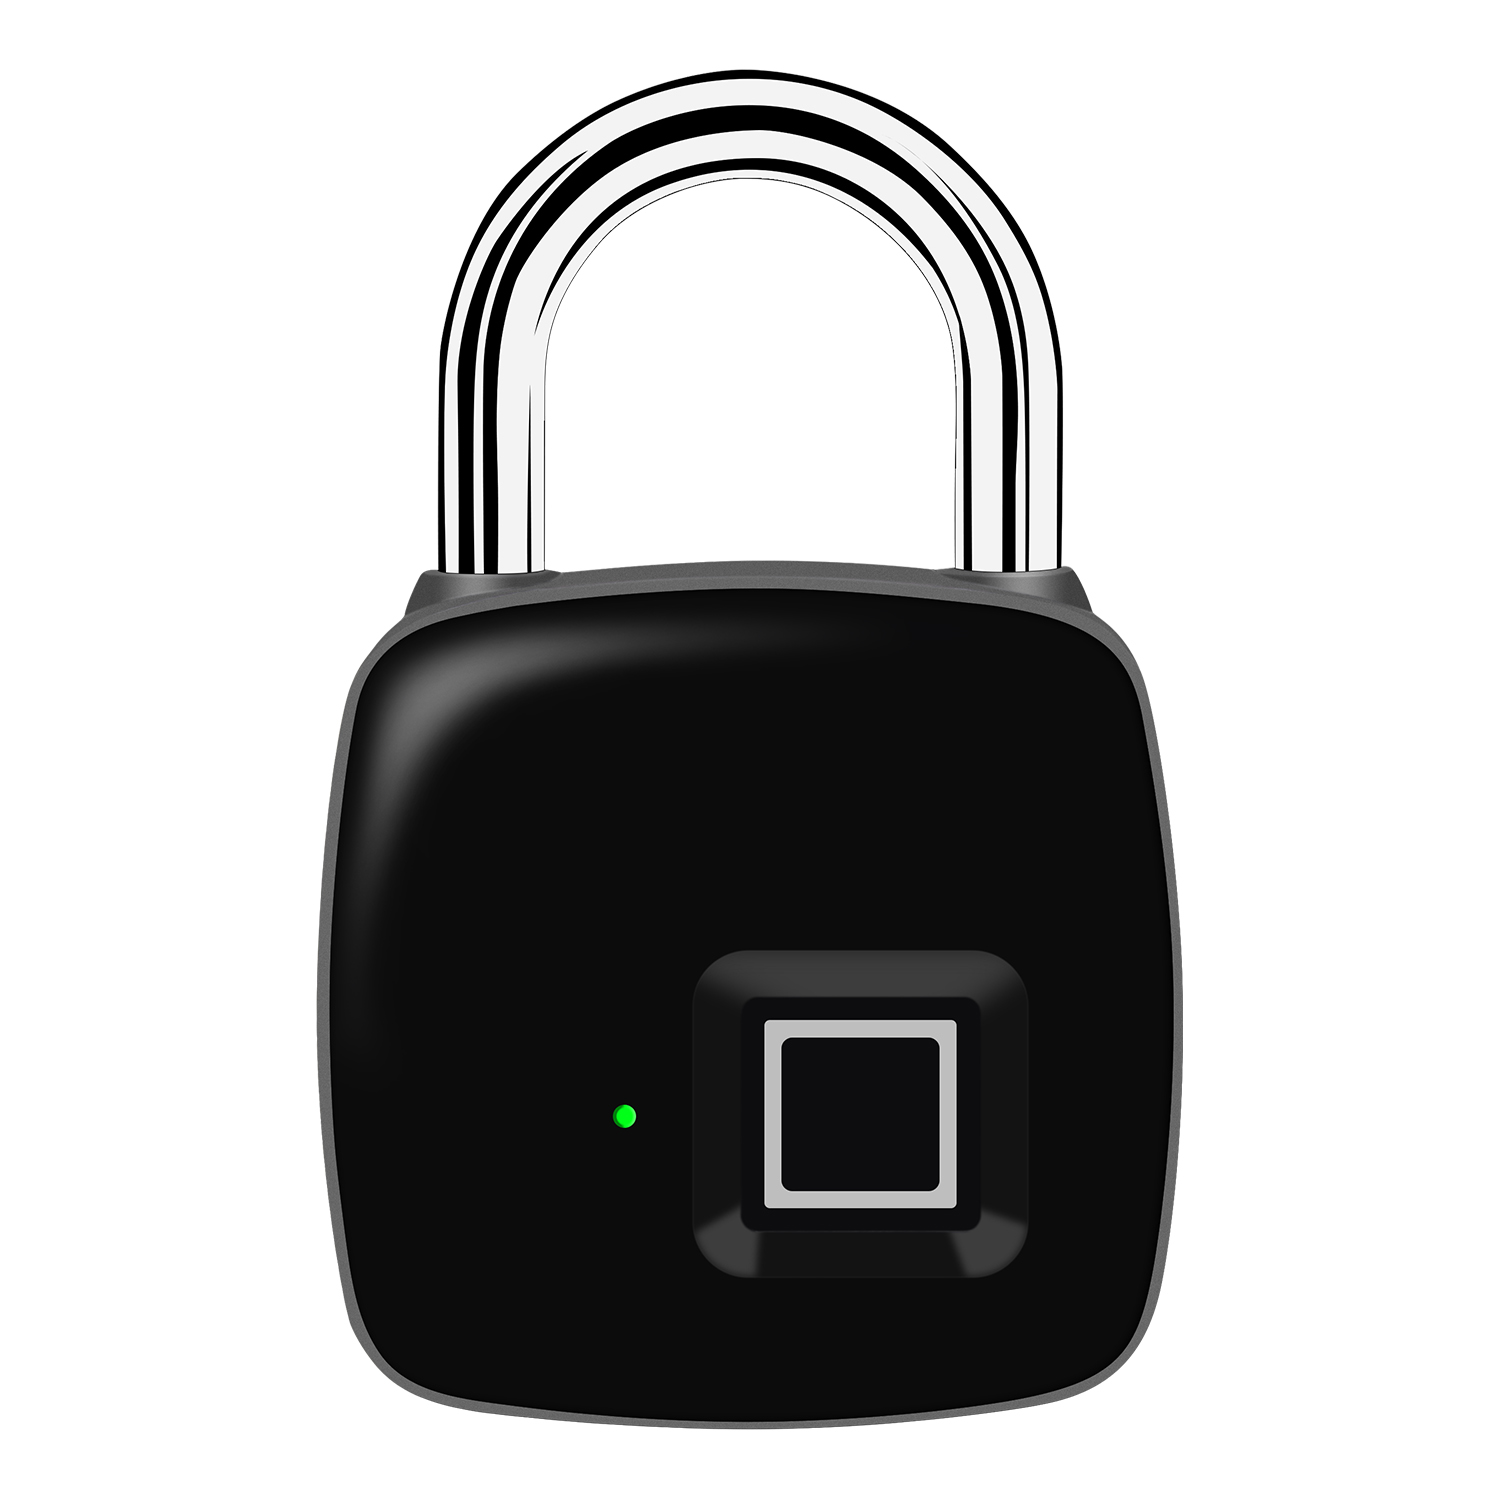 Anytek P3+ Smart Keyless Fingerprint Lock